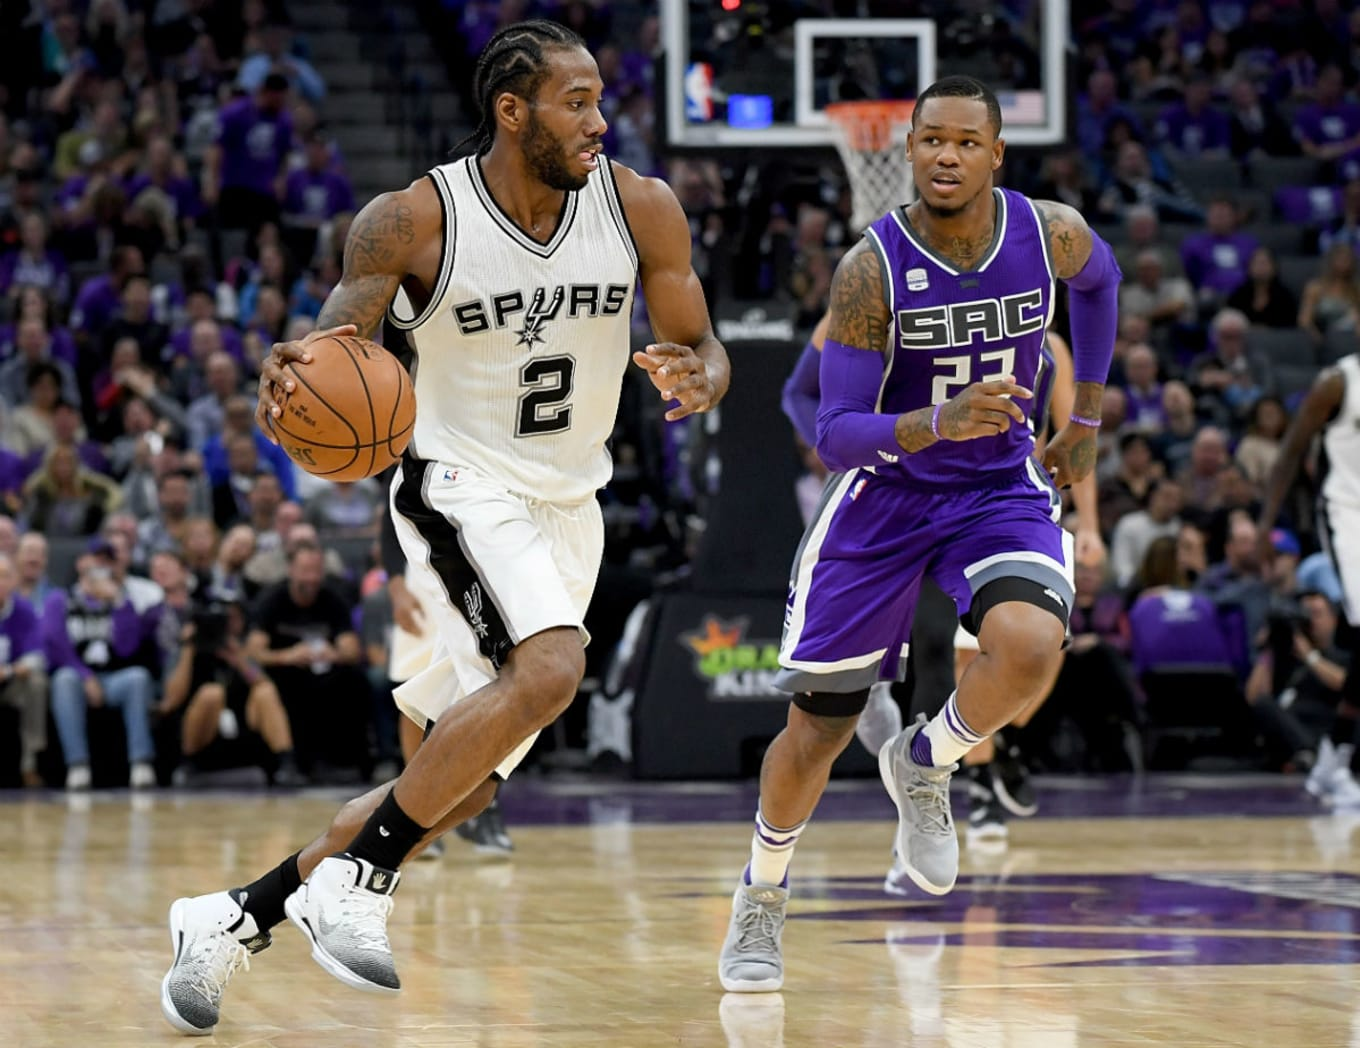 c0bbbc4b7962 Kawhi Leonard Wears White Black Air Jordan 31 PE